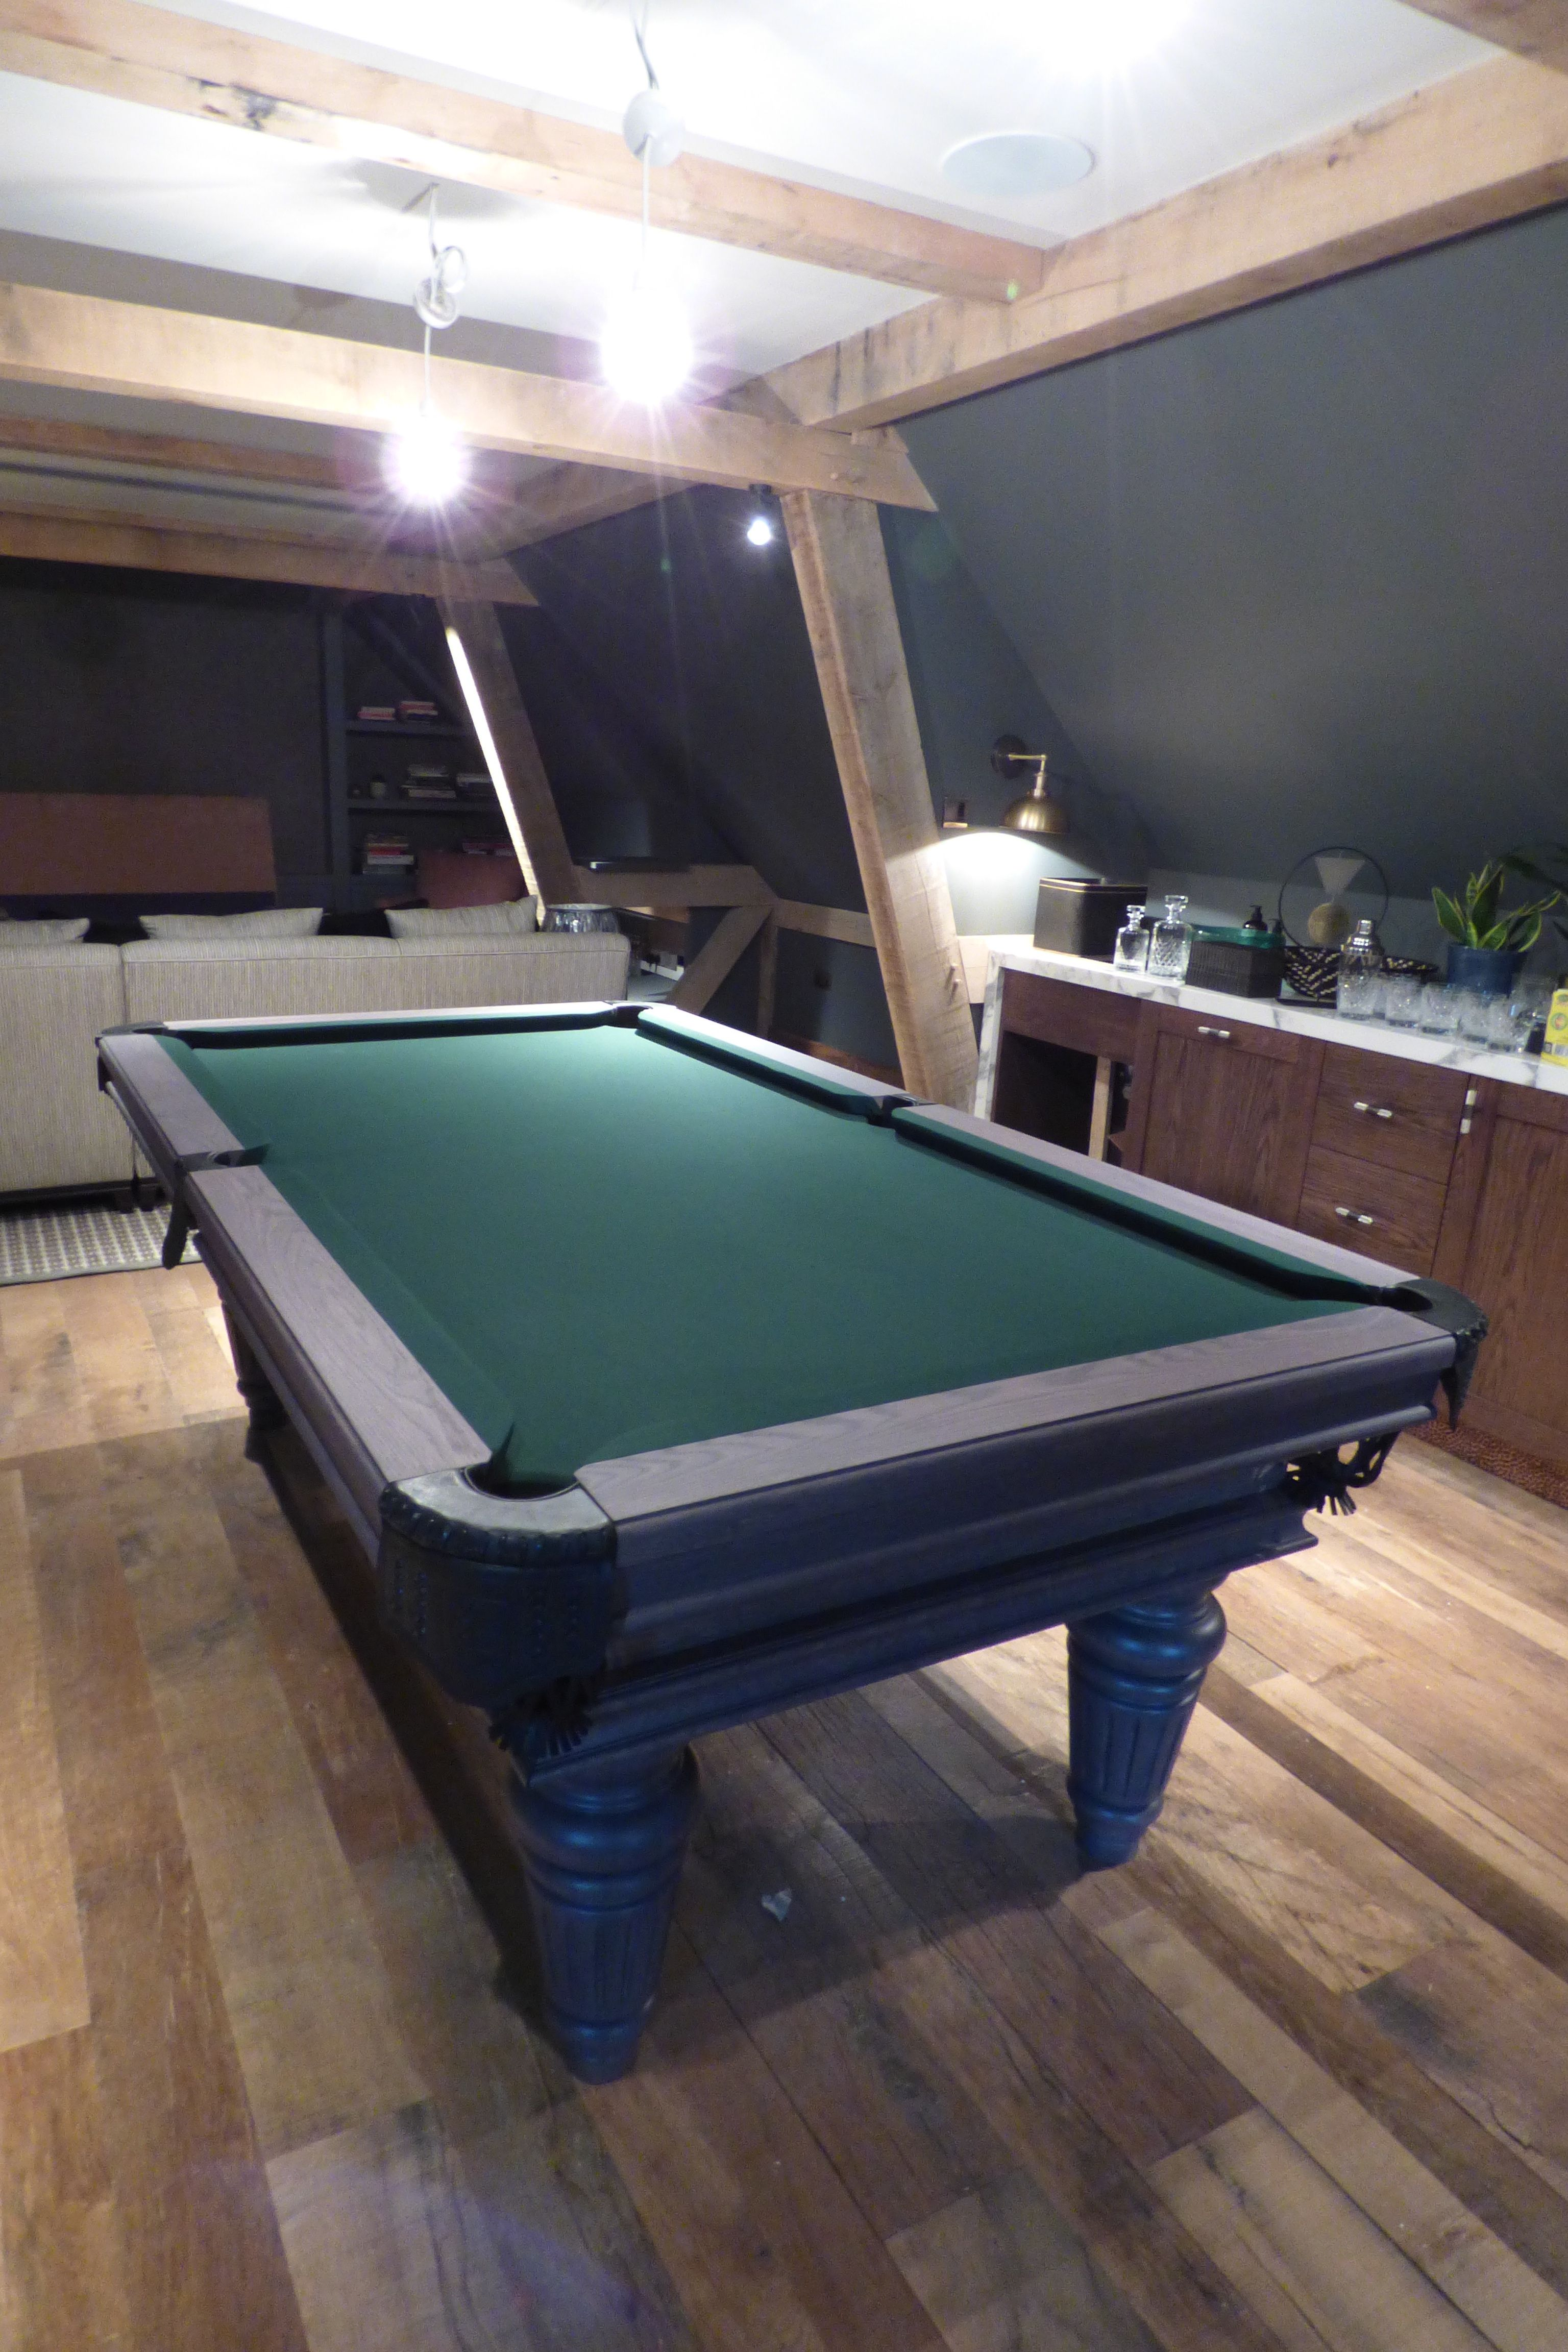 Traditional Pool or Snooker Table in 2020 Pool table